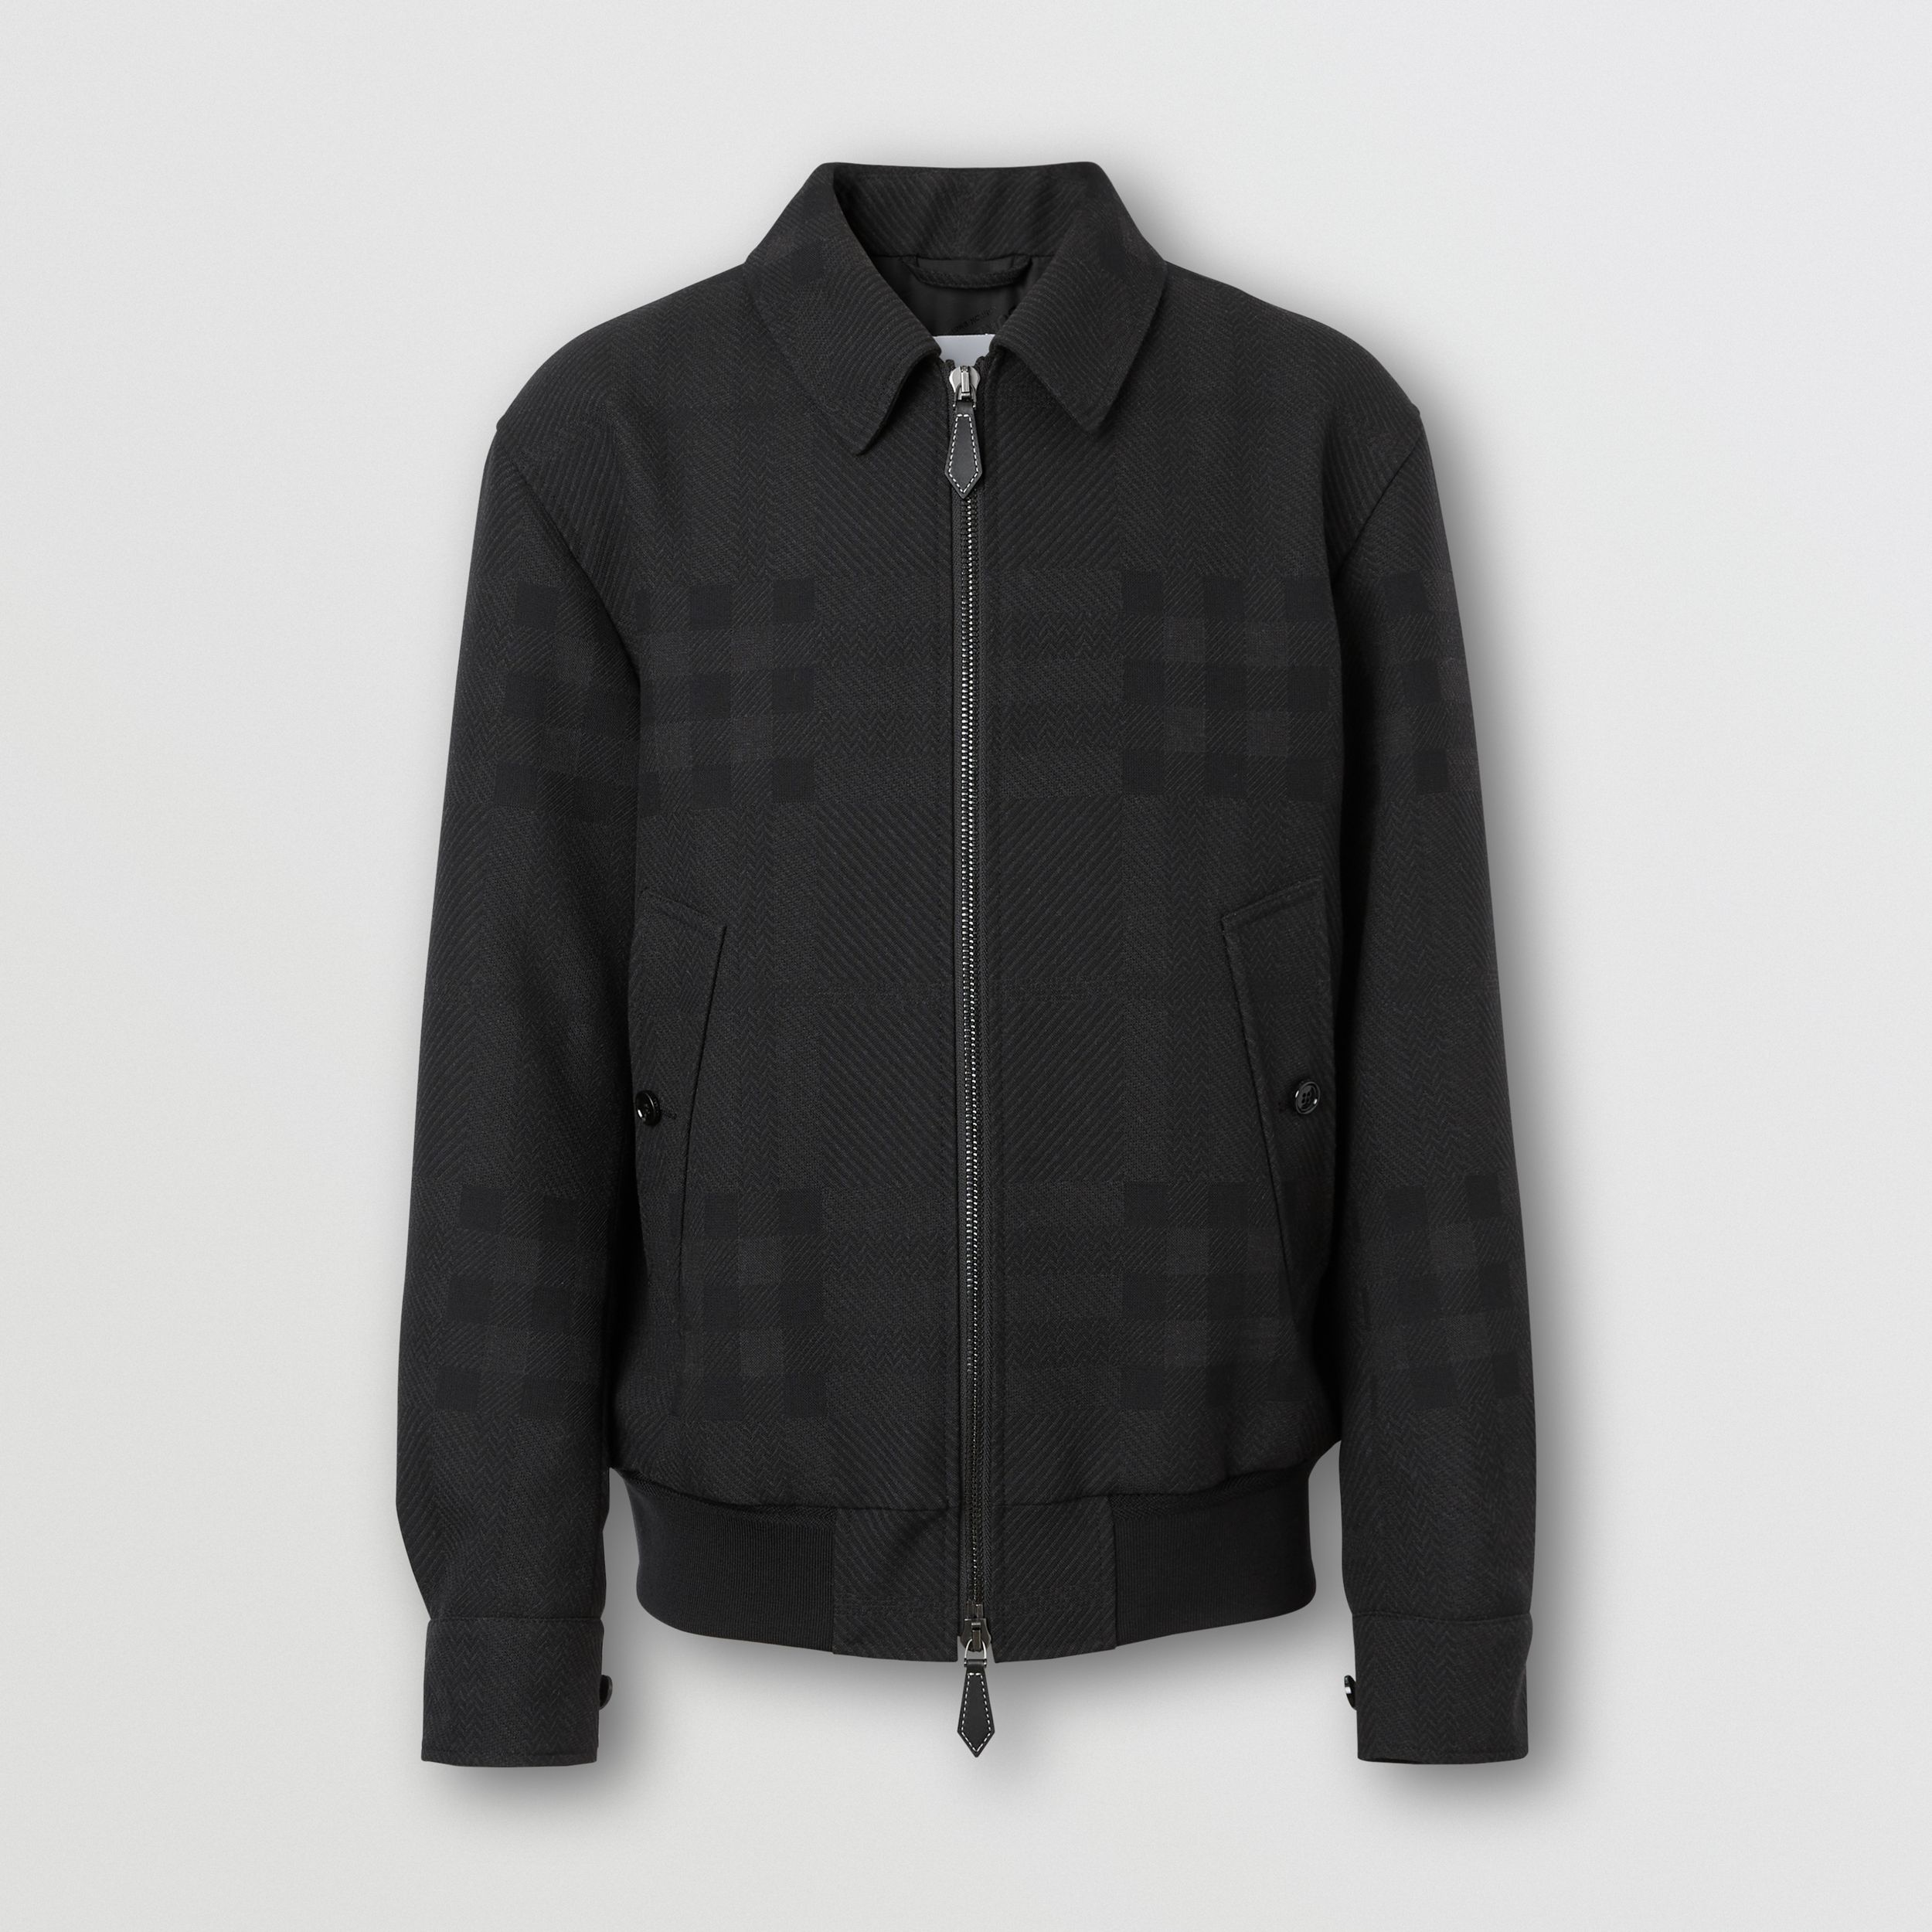 Check Wool Jacquard Harrington Jacket in Charcoal Black - Men | Burberry Australia - 4